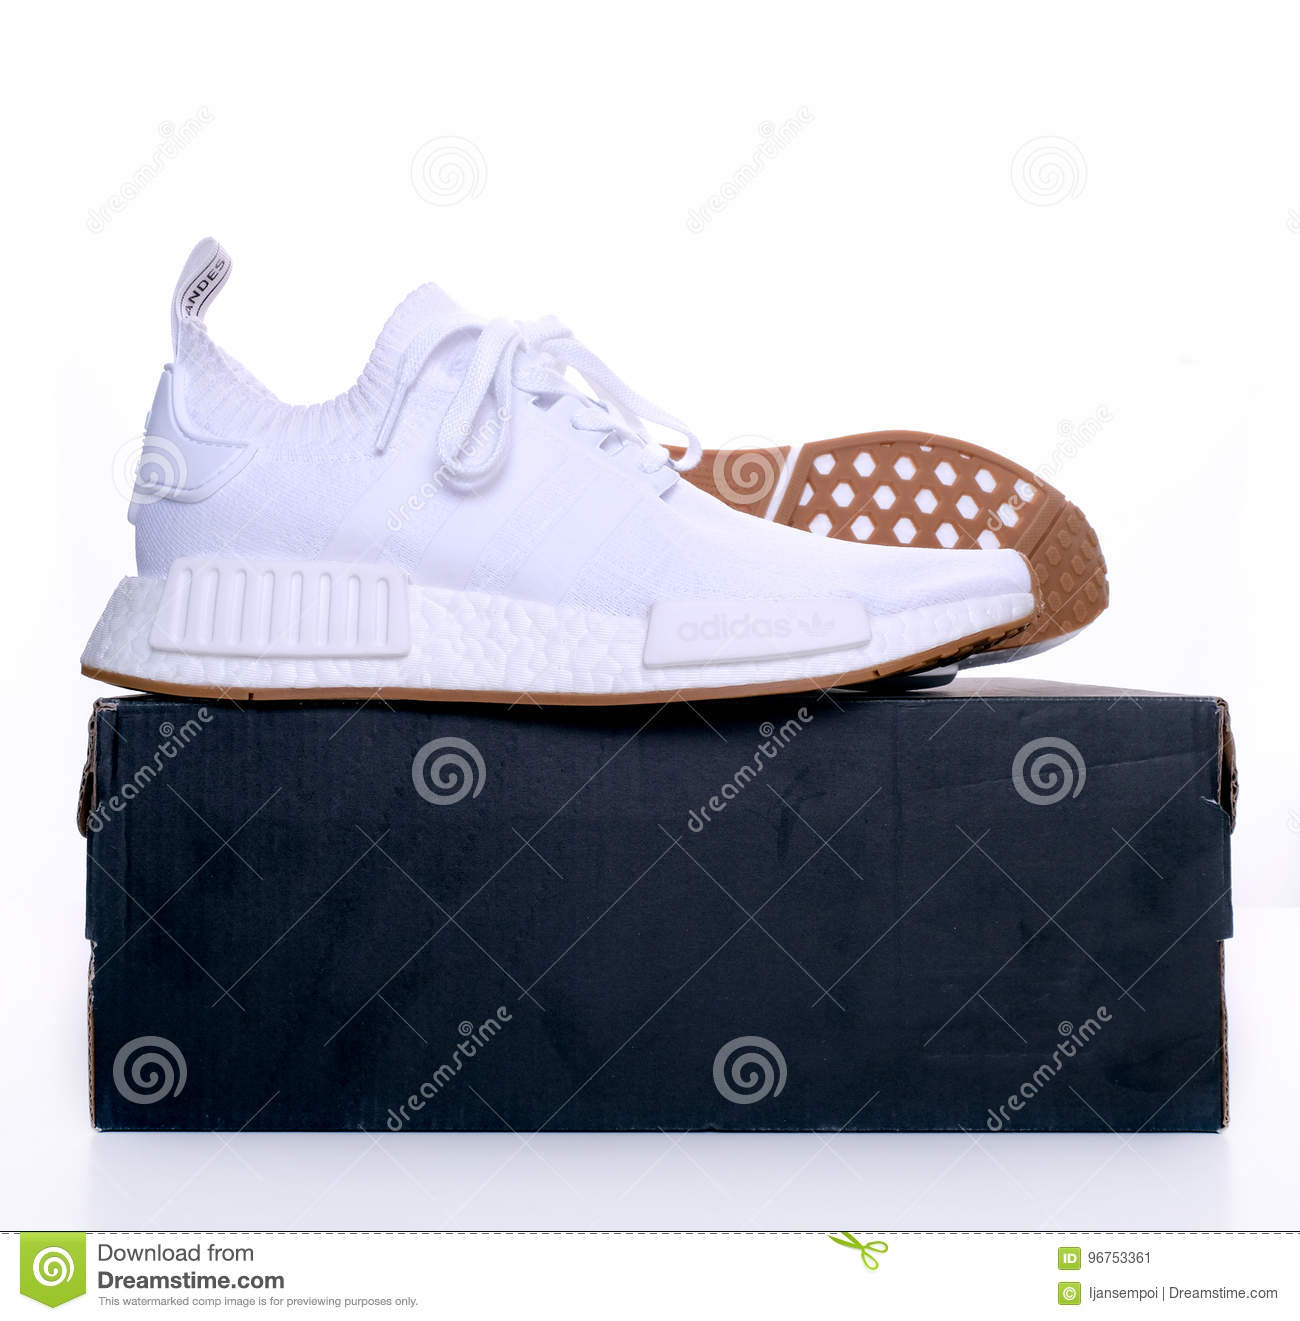 adidas originals nmd r1 white gum